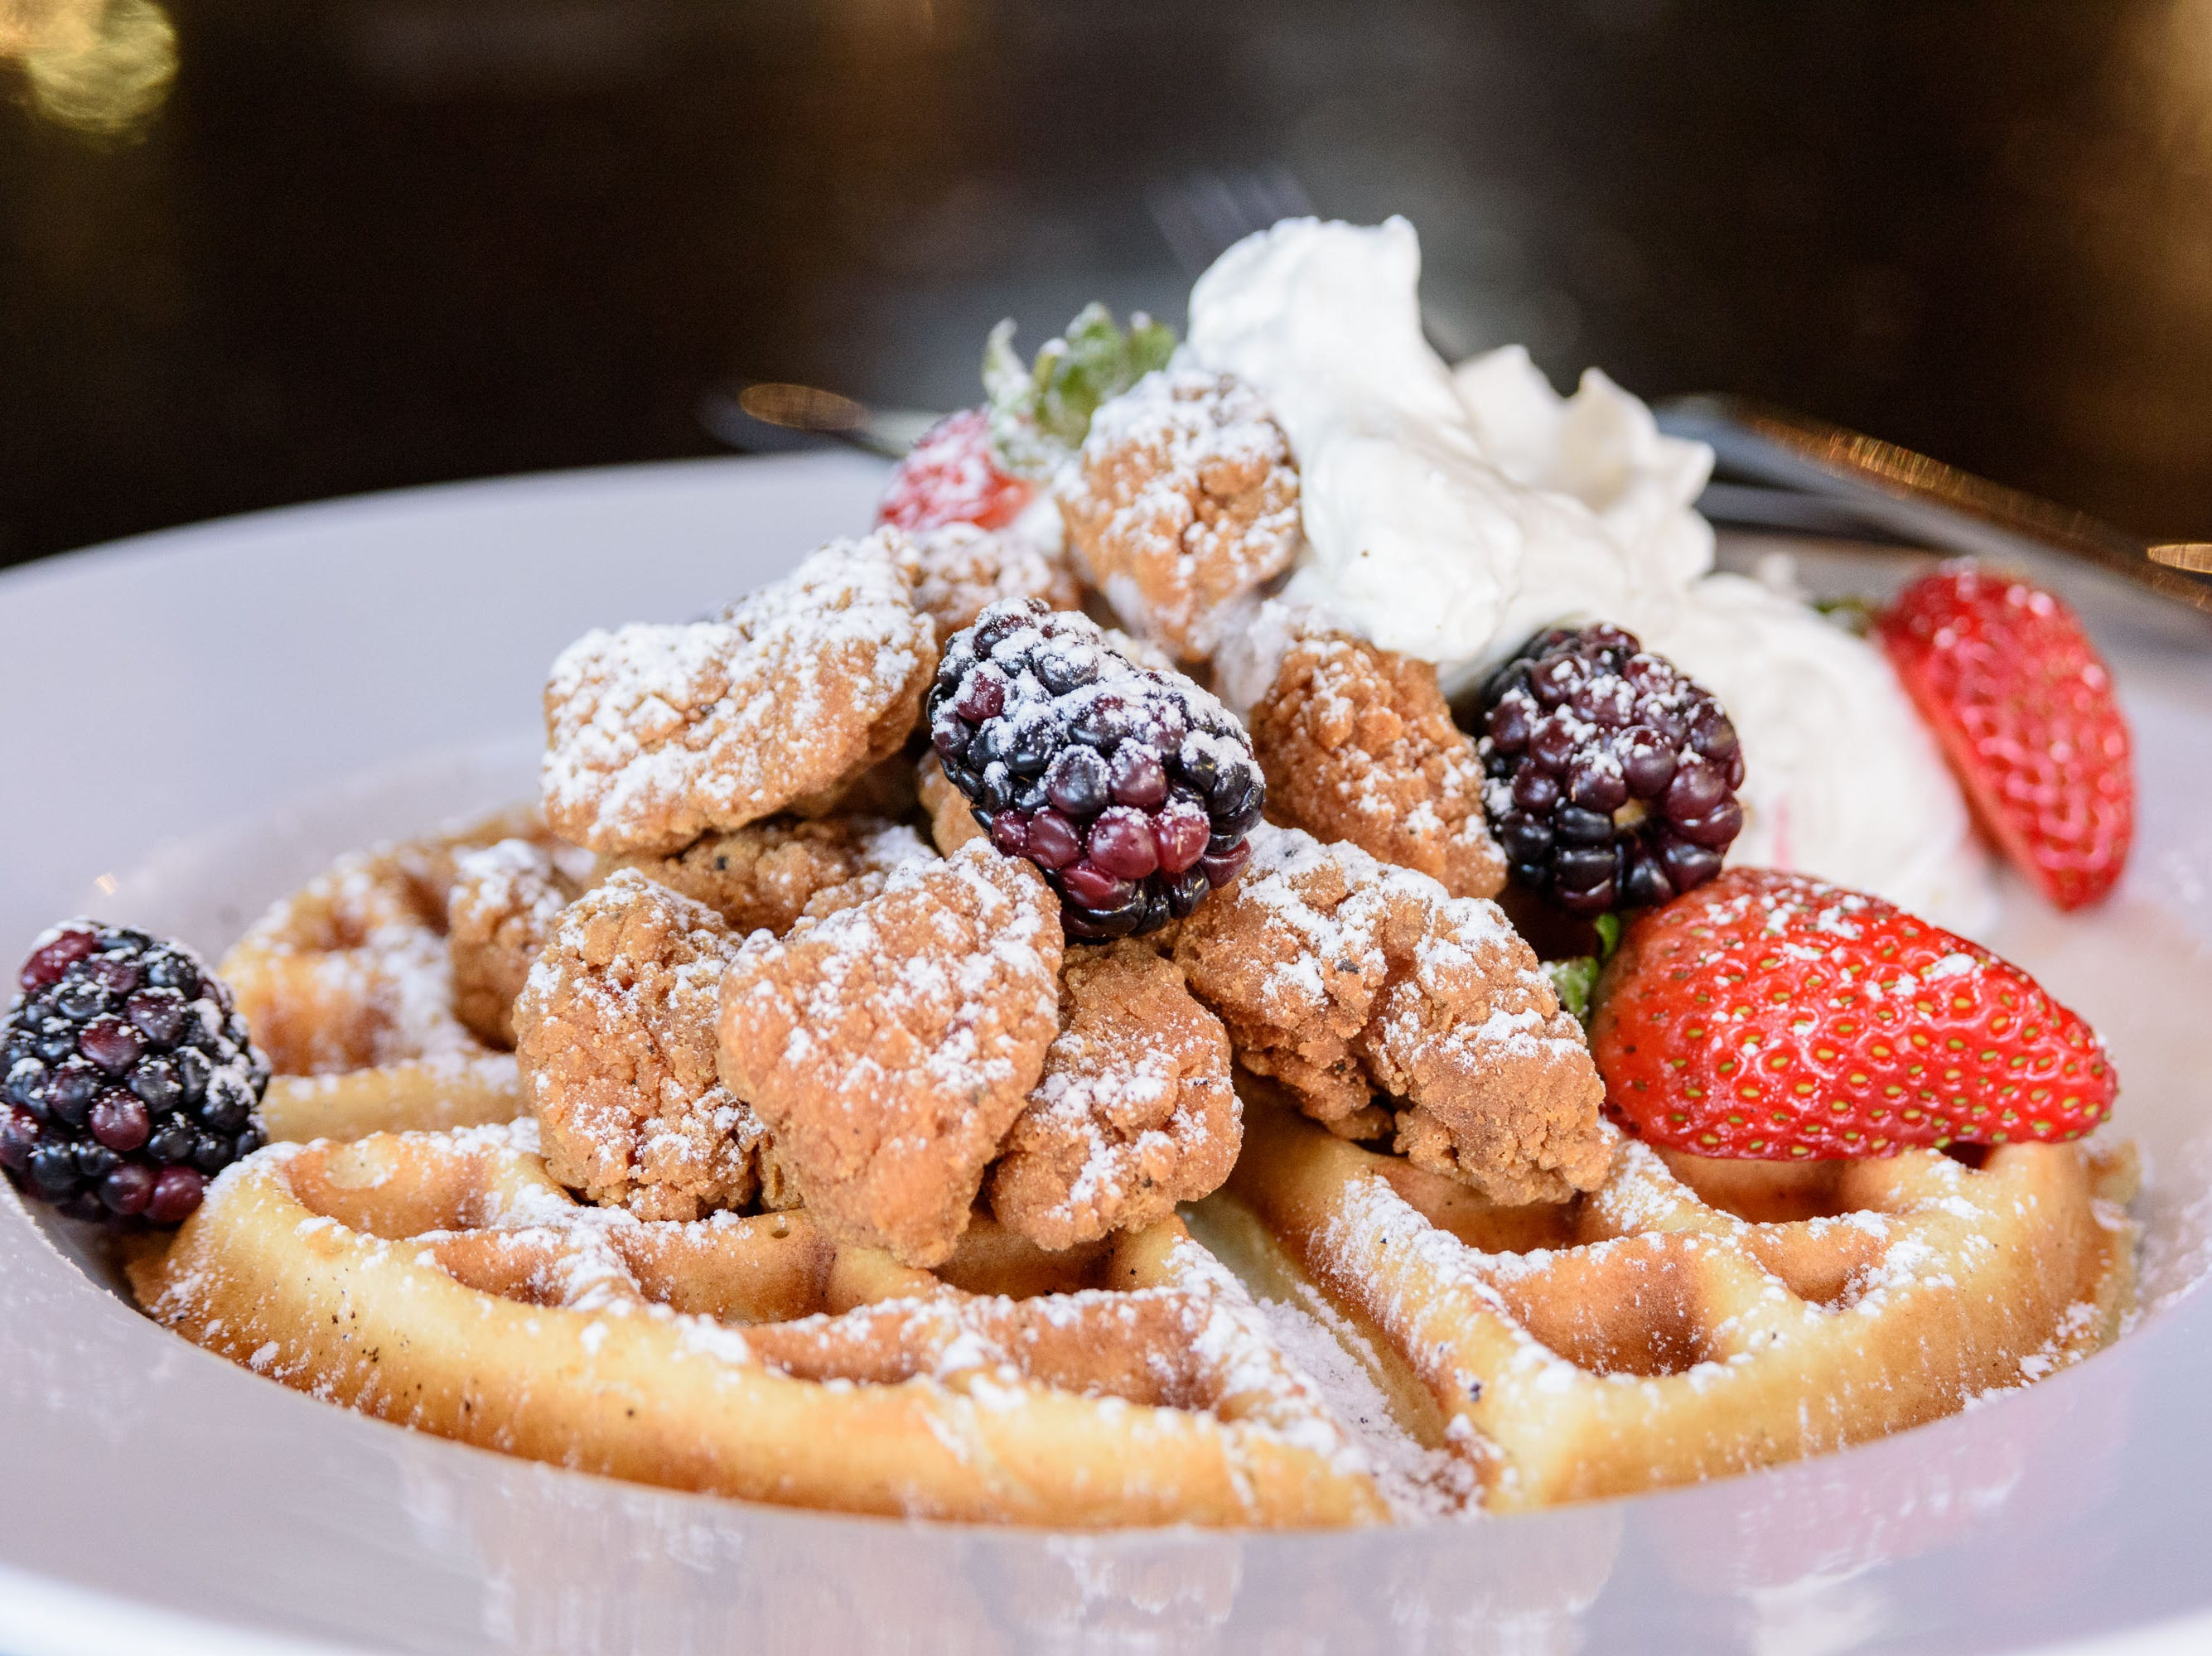 Chicken and Waffles at The Manhattan Project at 2101 Frankfort Ave. Oct. 18, 2018